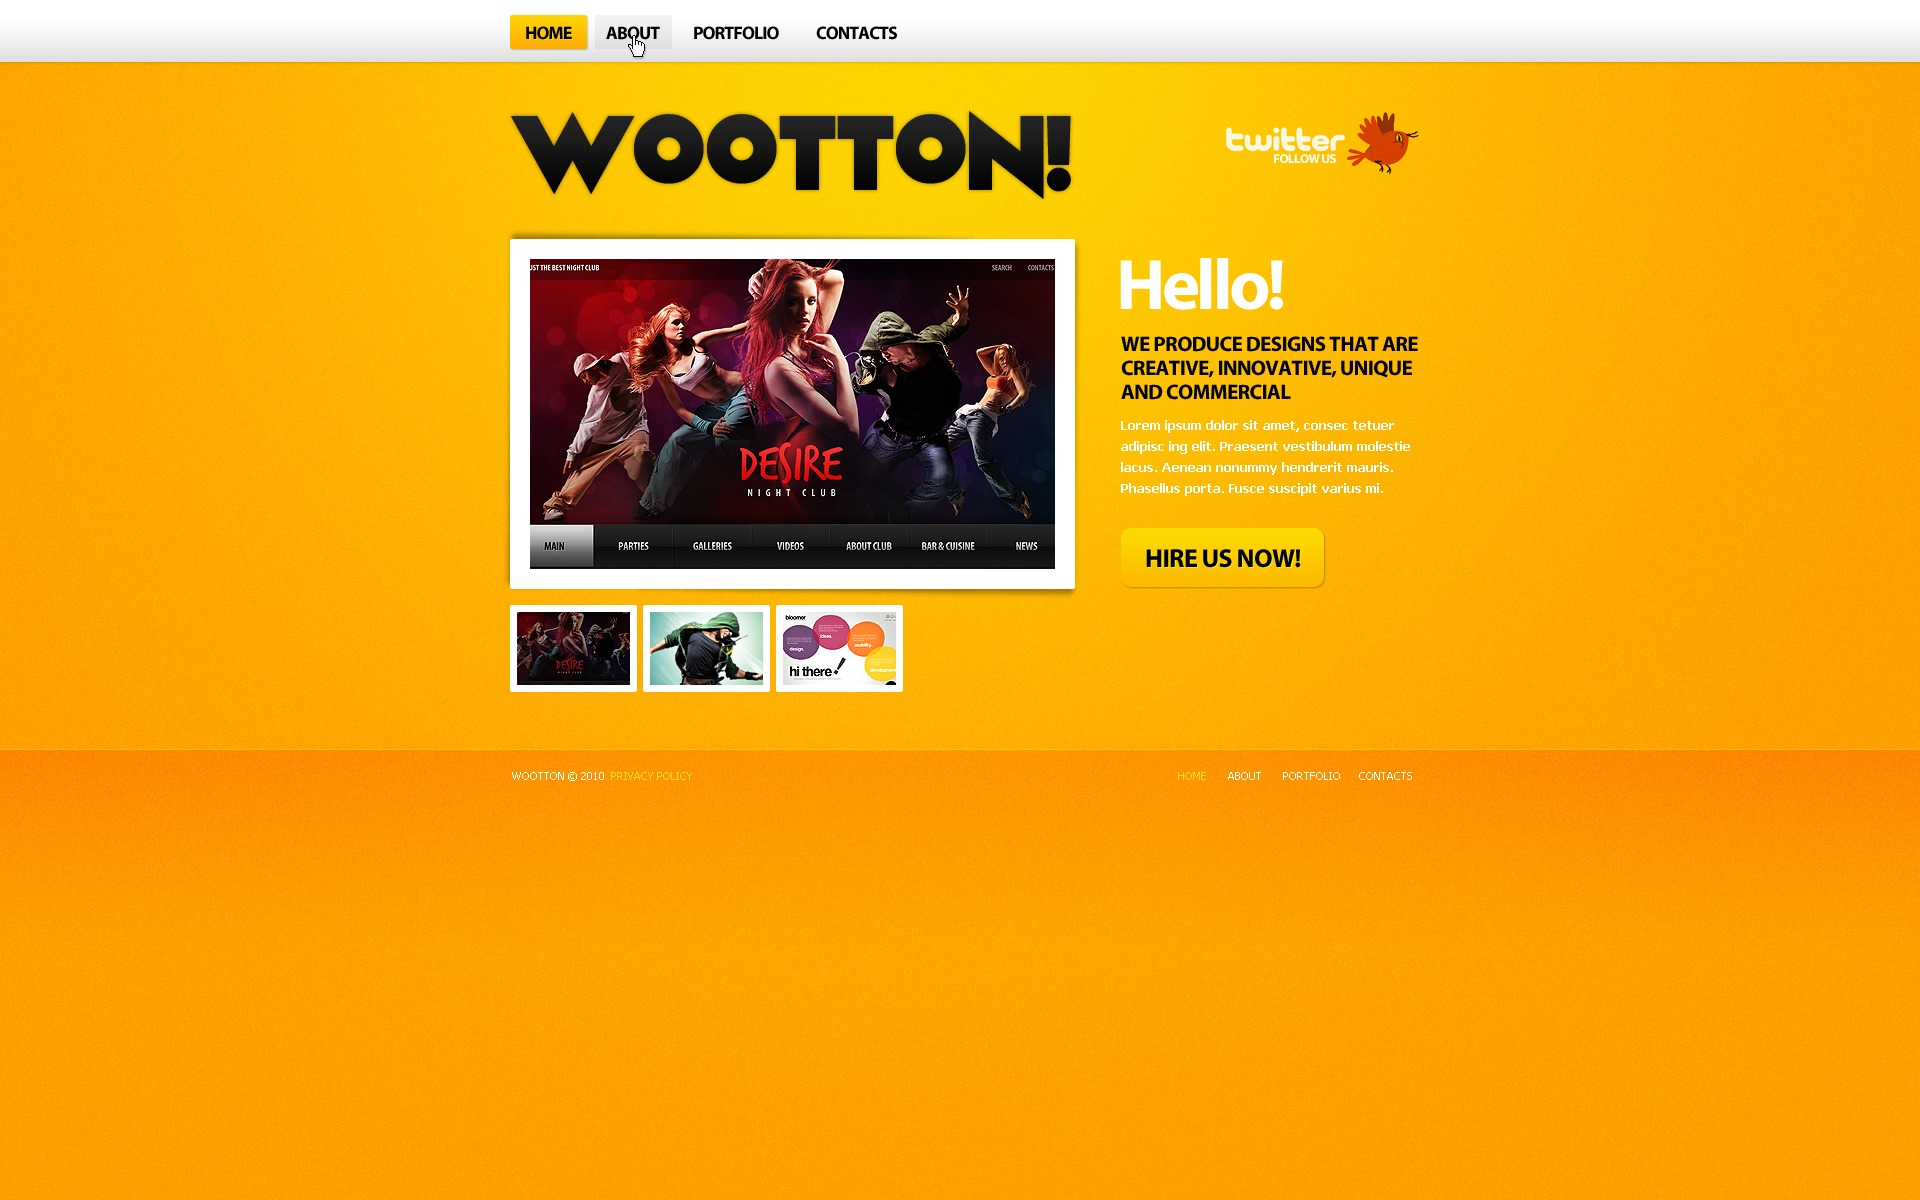 The Wootton! Design Studio PSD Design 54528, one of the best PSD templates of its kind (web design, wide, jquery), also known as wootton! design studio PSD template, creative art gallery PSD template, artists PSD template, painting PSD template, painters PSD template, web development PSD template, webmasters PSD template, designers PSD template, internet PSD template, www PSD template, sites PSD template, web design PSD template, webpage PSD template, personal portfolio and related with wootton! design studio, creative art gallery, artists, painting, painters, web development, webmasters, designers, internet, www, sites, web design, webpage, personal portfolio, etc.